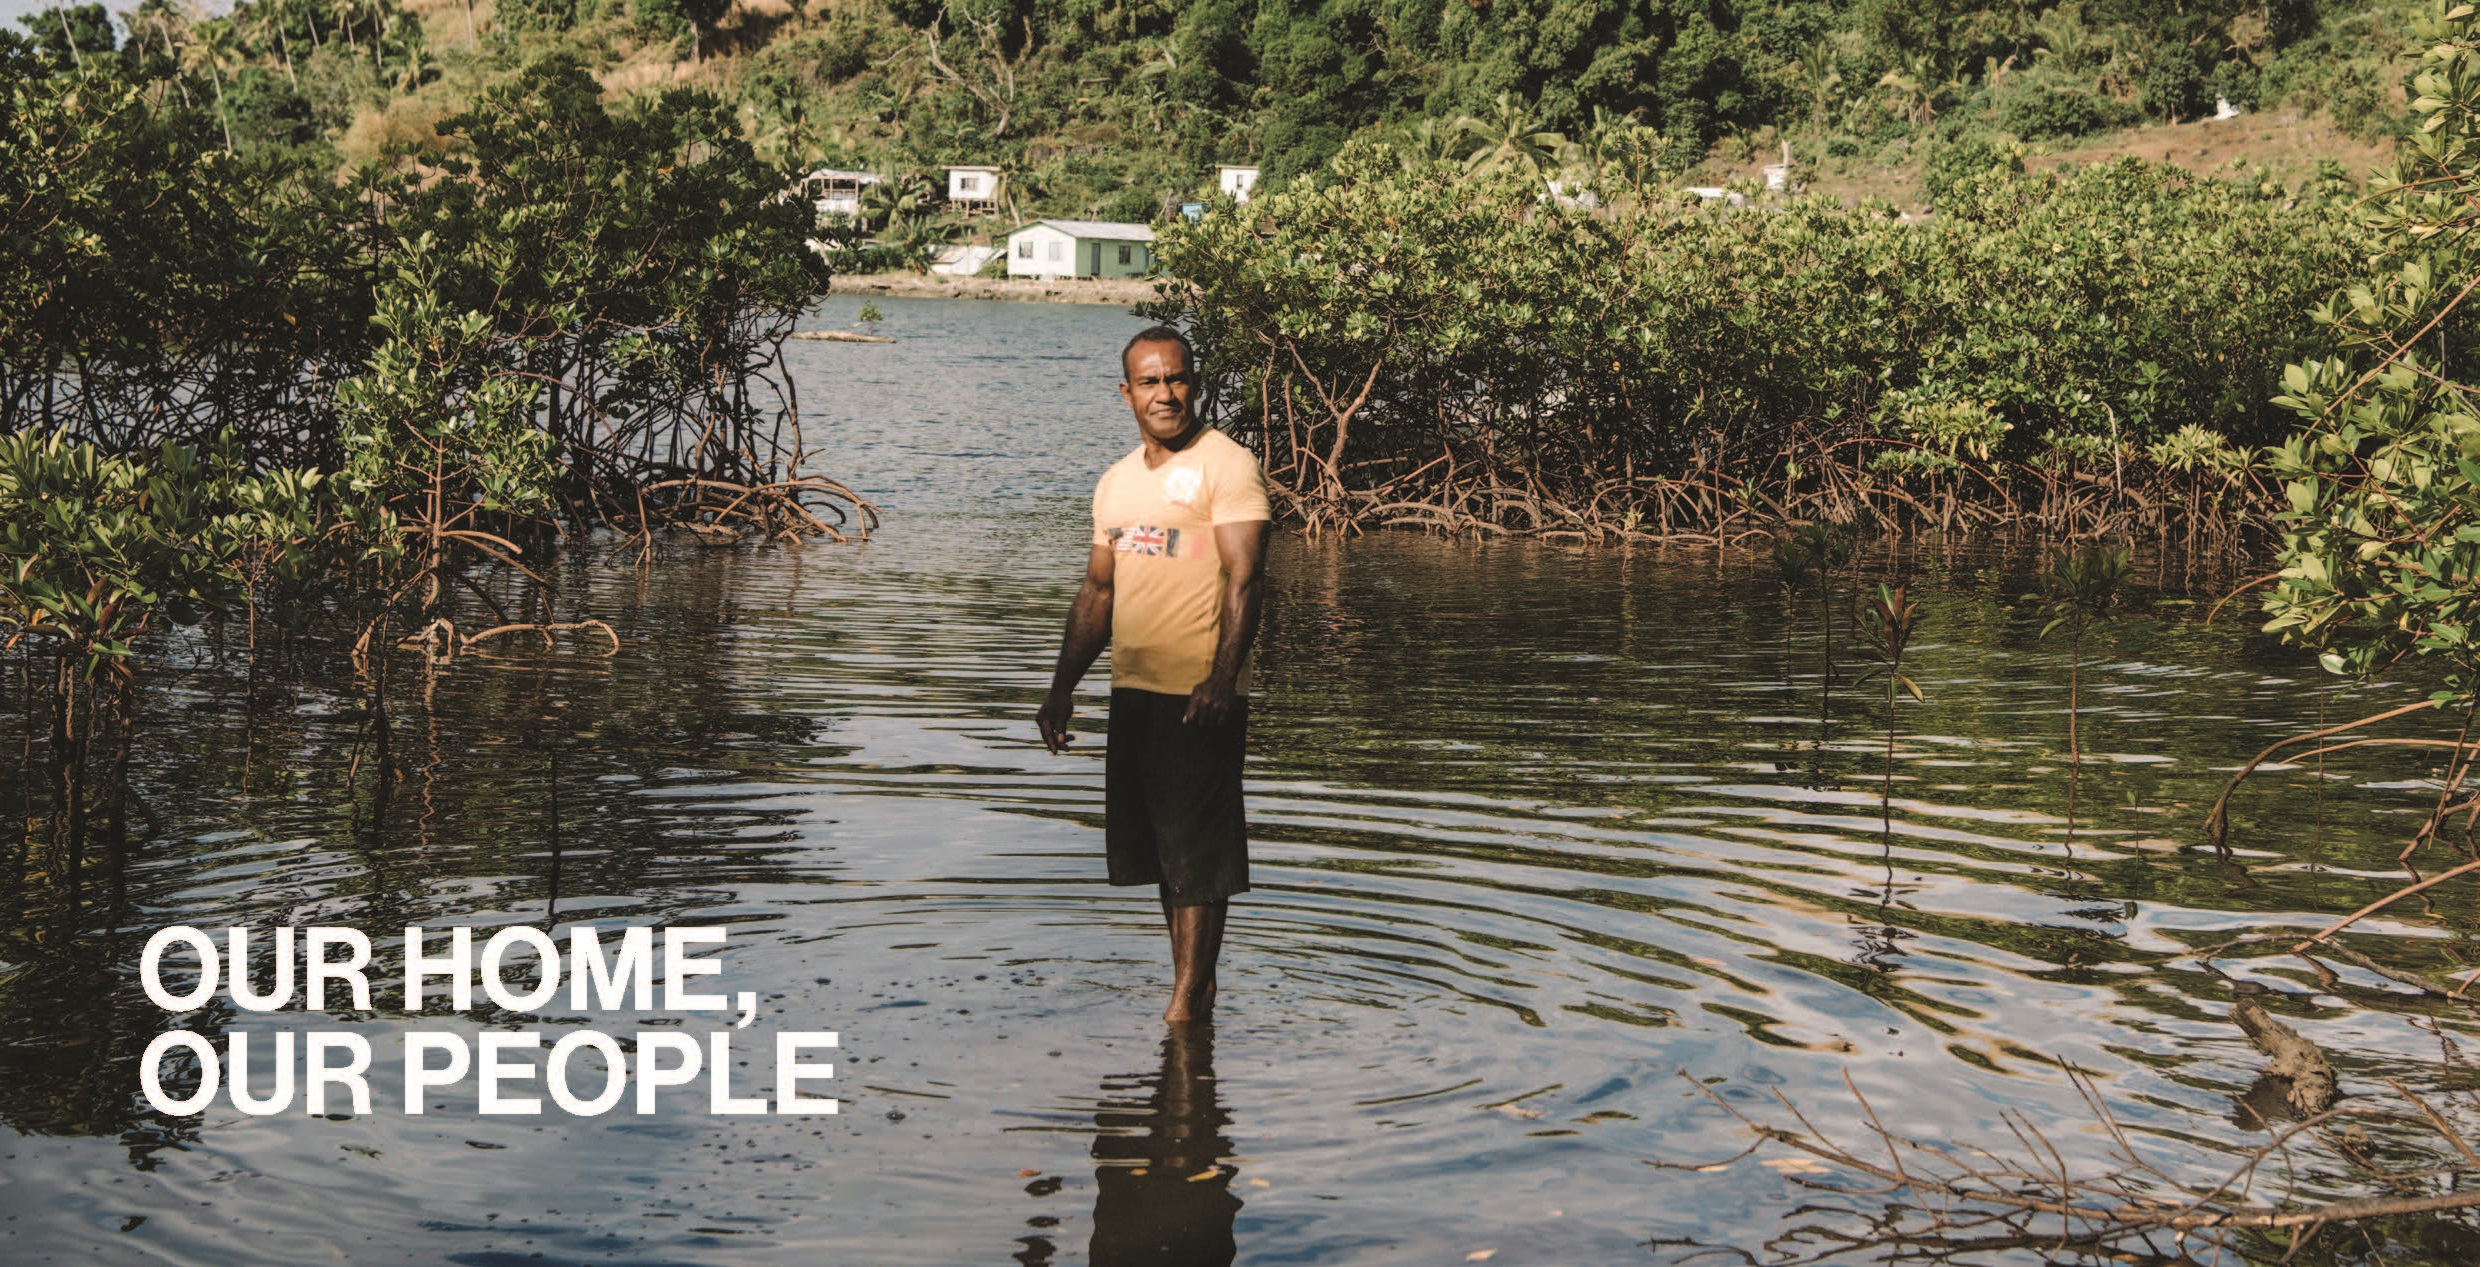 Fijian man standing in a flooded field in Fiji